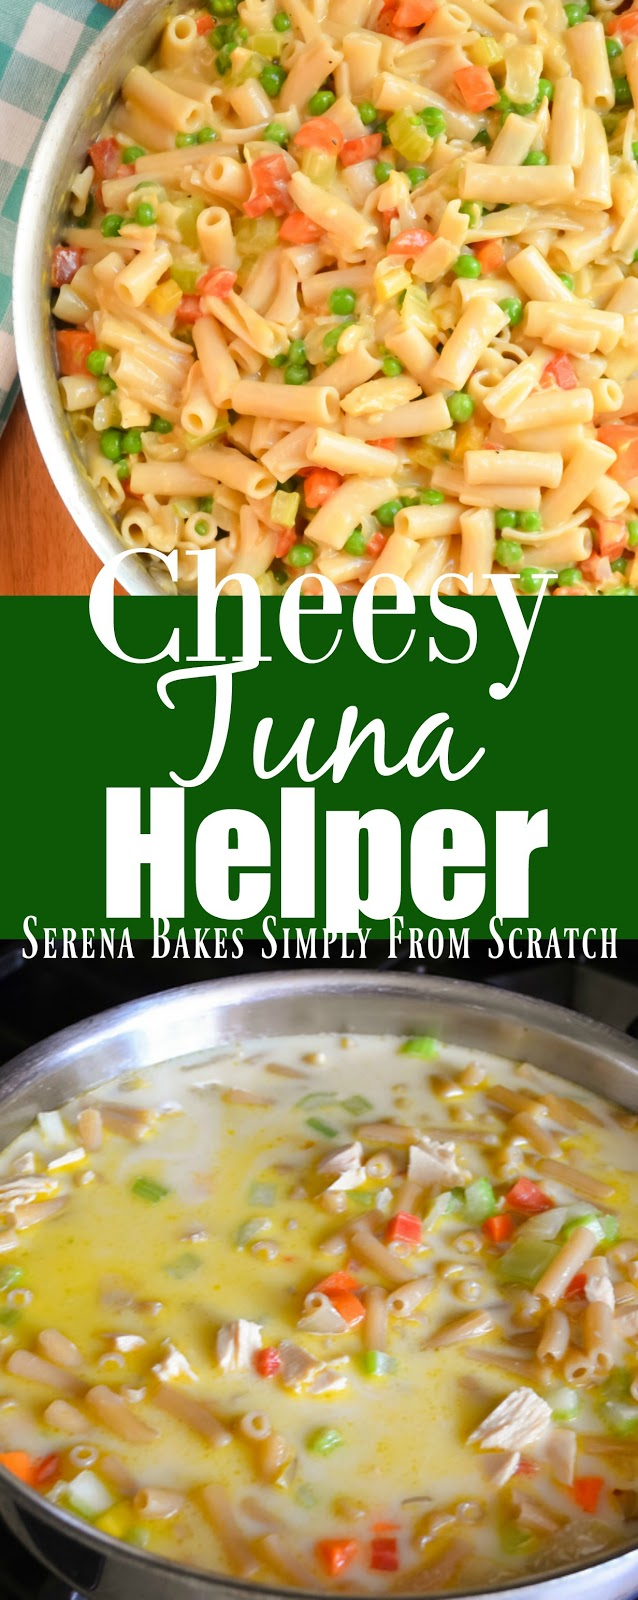 Cheesy One Skillet Tuna Helper is a super simple budget friendly dinner with in 25 minutes from Serena Bakes Simply From Scratch.